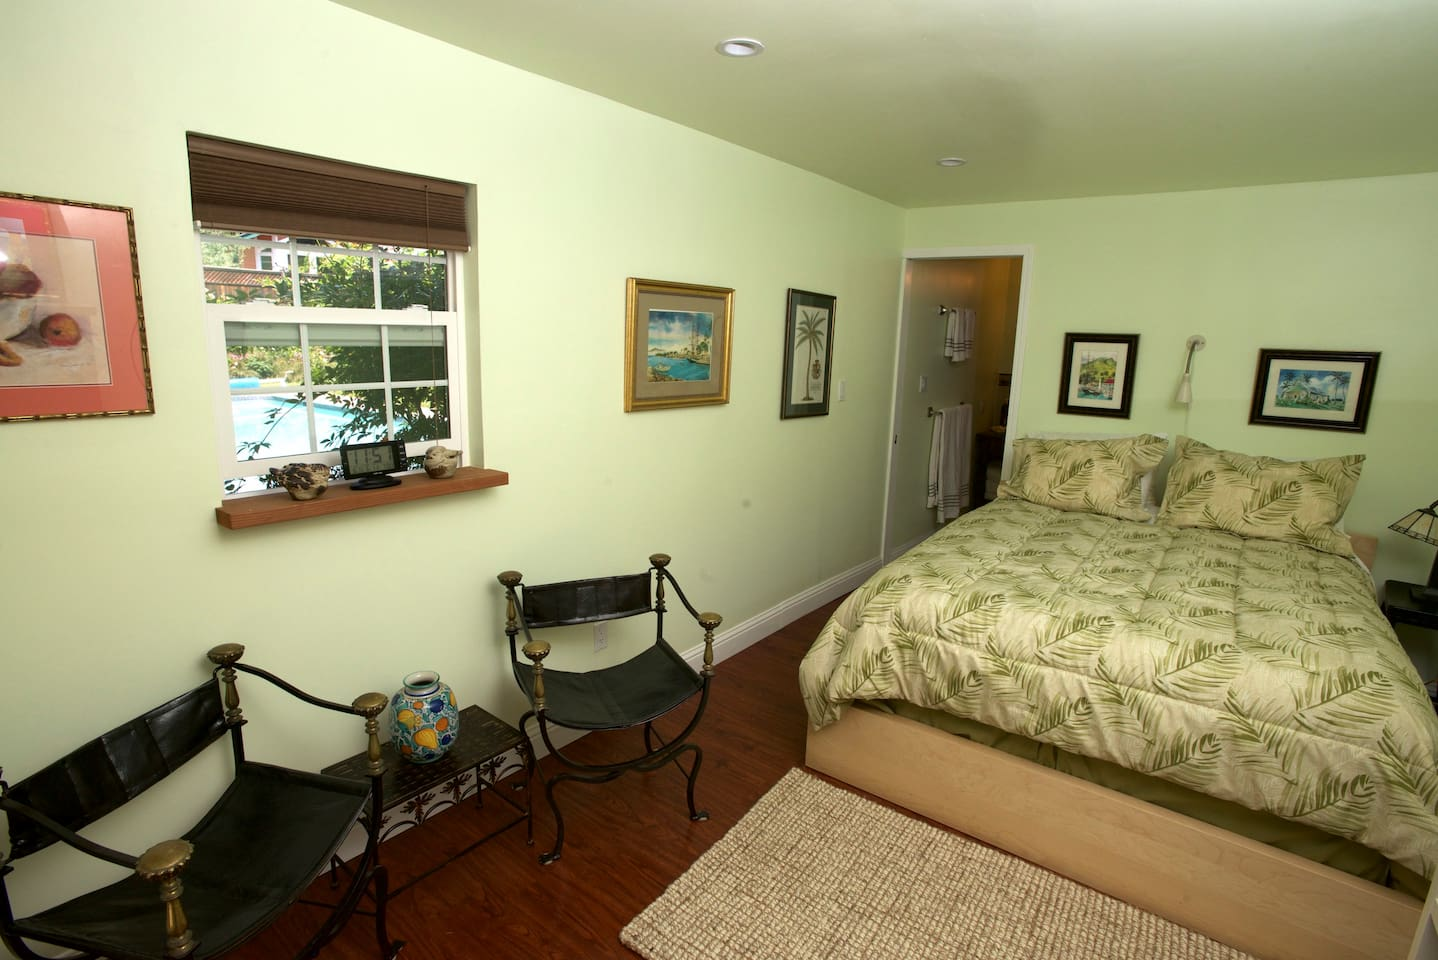 Queen Bed and Antique Chairs